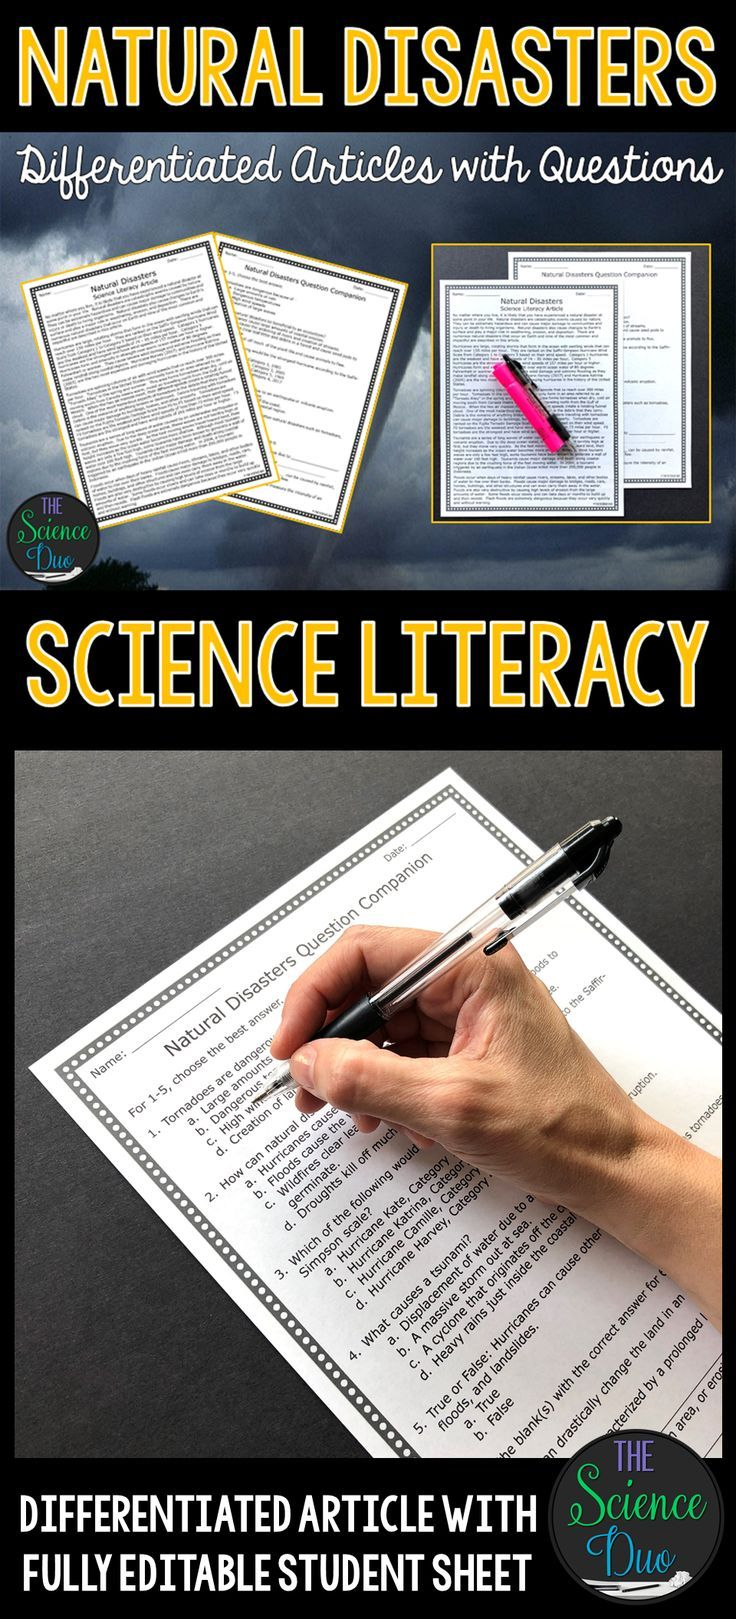 Natural Disasters - Science Literacy Article | You Rock My